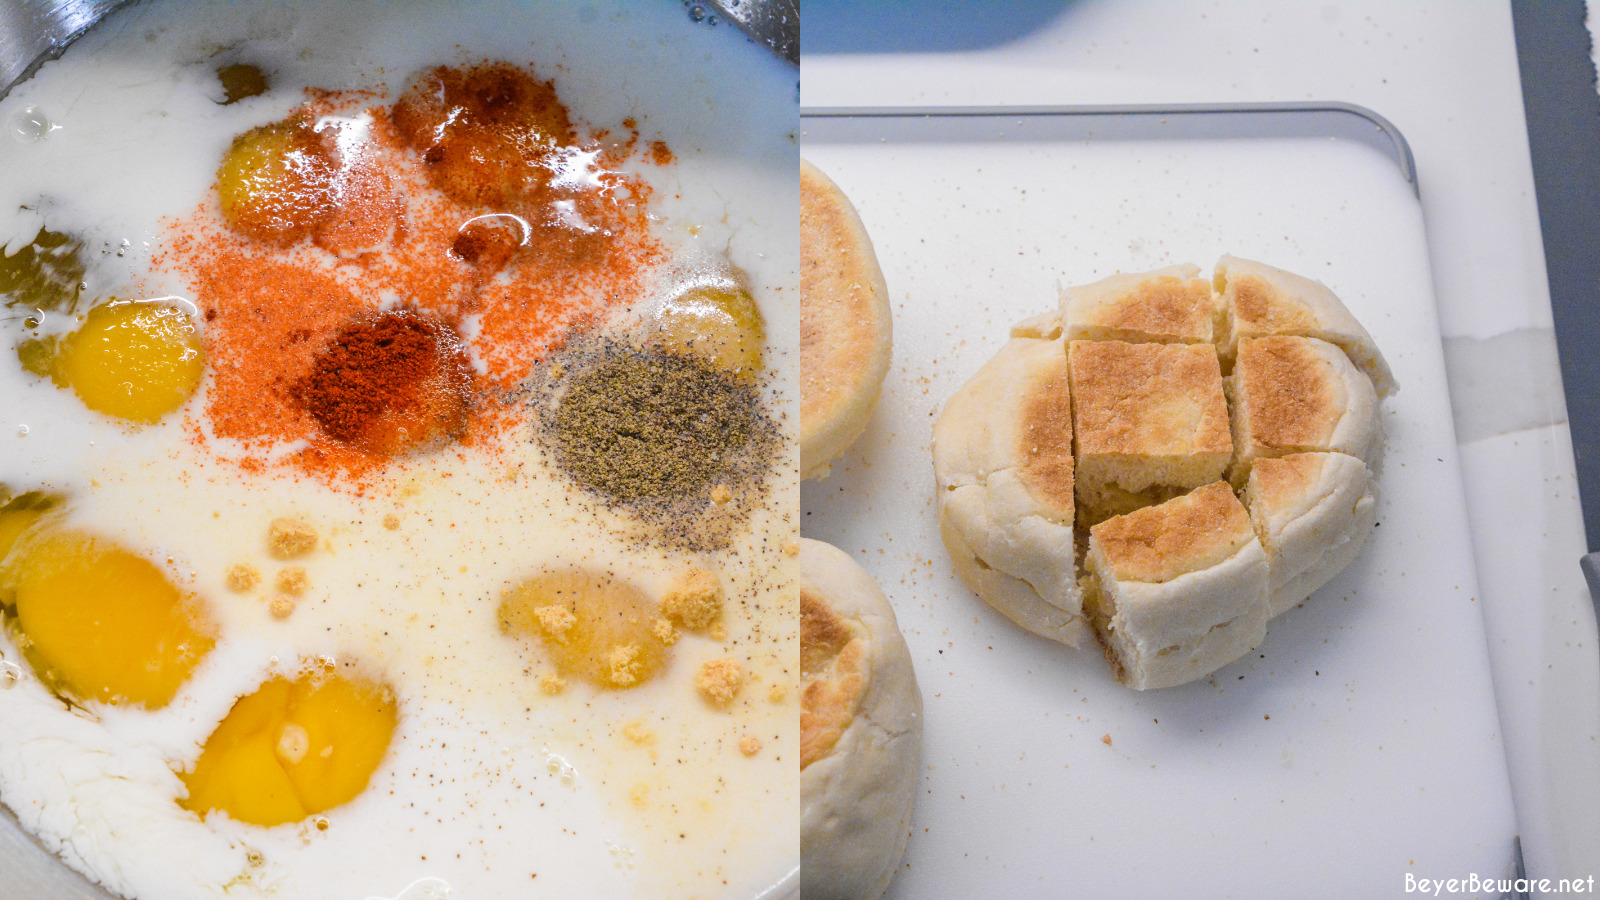 Mixing eggs and milk as well as cubing an English Muffin